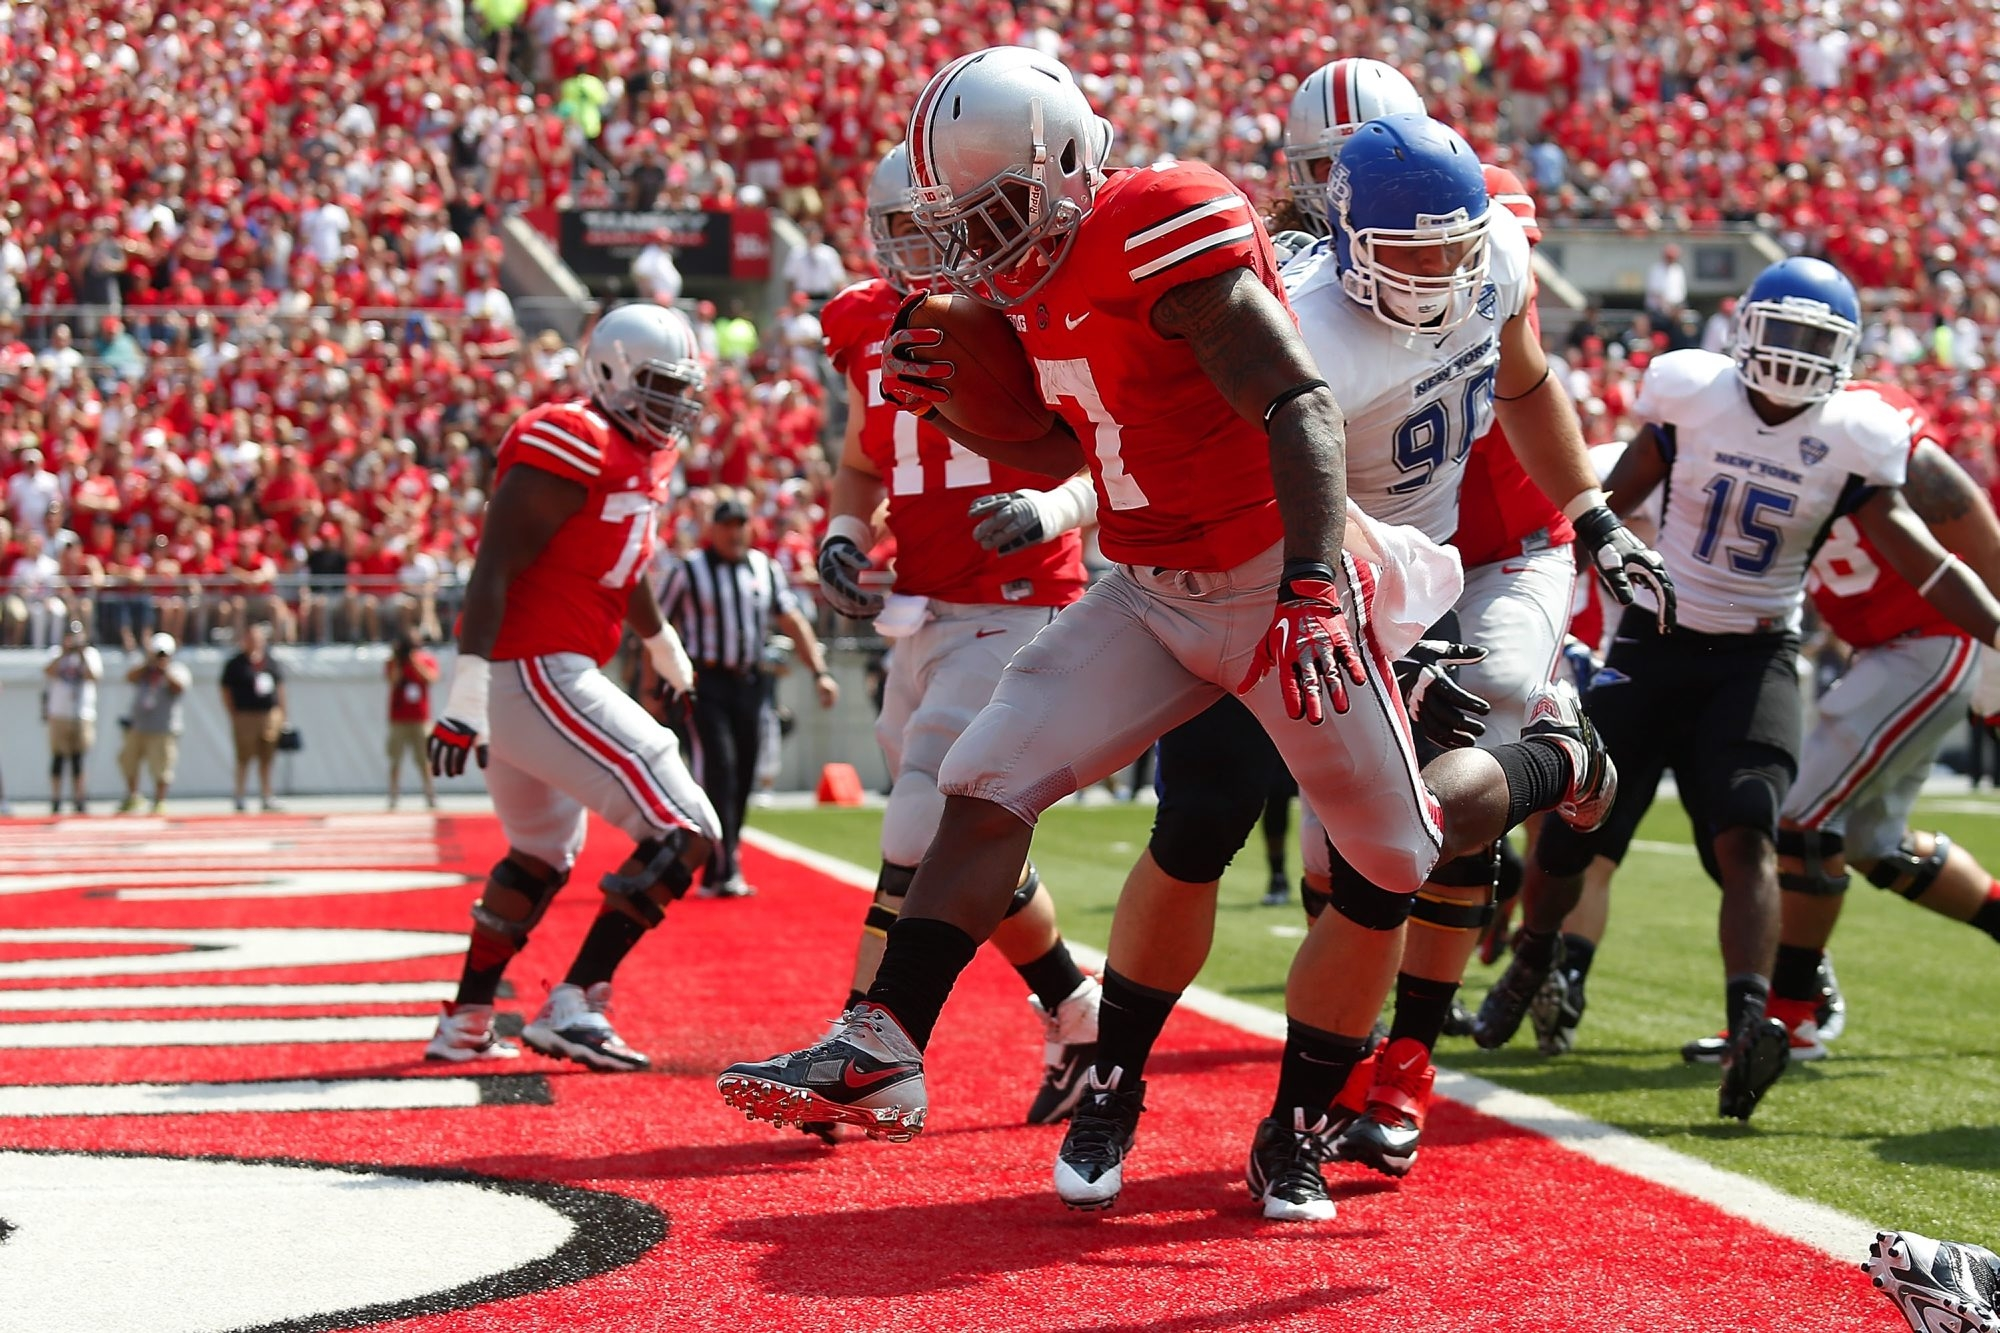 Jordan Hall (7) of Ohio State scores against Buffalo last year in Columbus.  UB was well-compensated to play in that game.